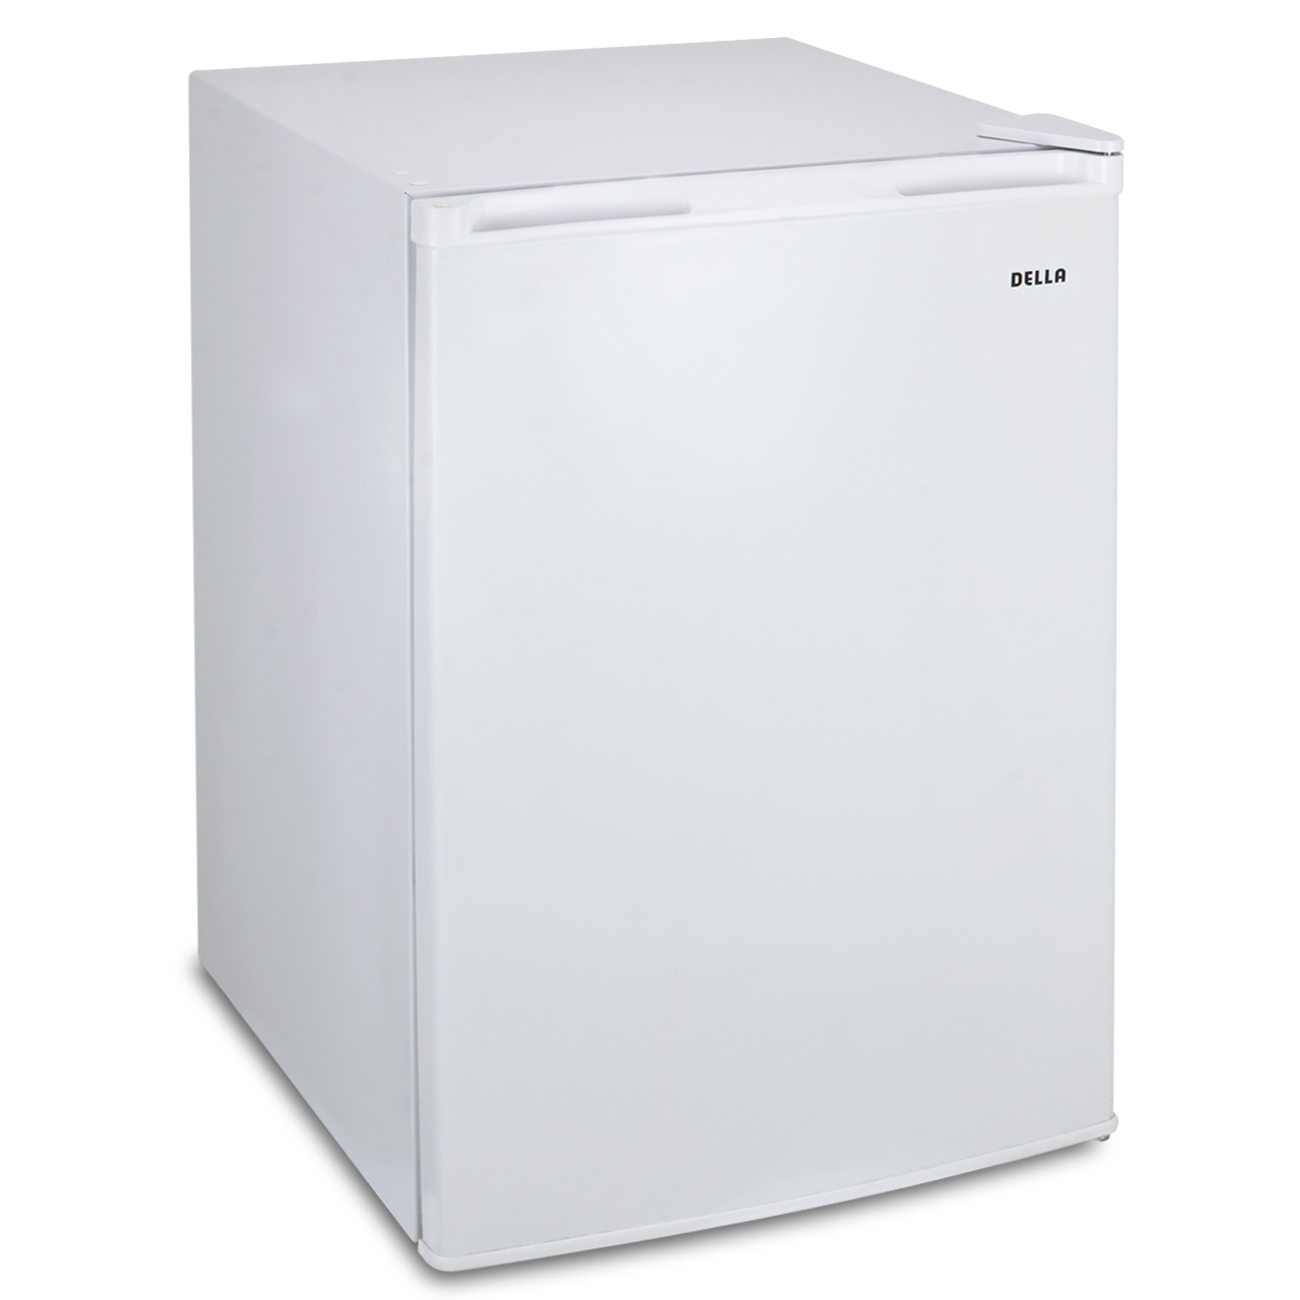 Della 4.5 Cubic FT Compact Single Reversible Door Mini Refrigerator and Freezer, White